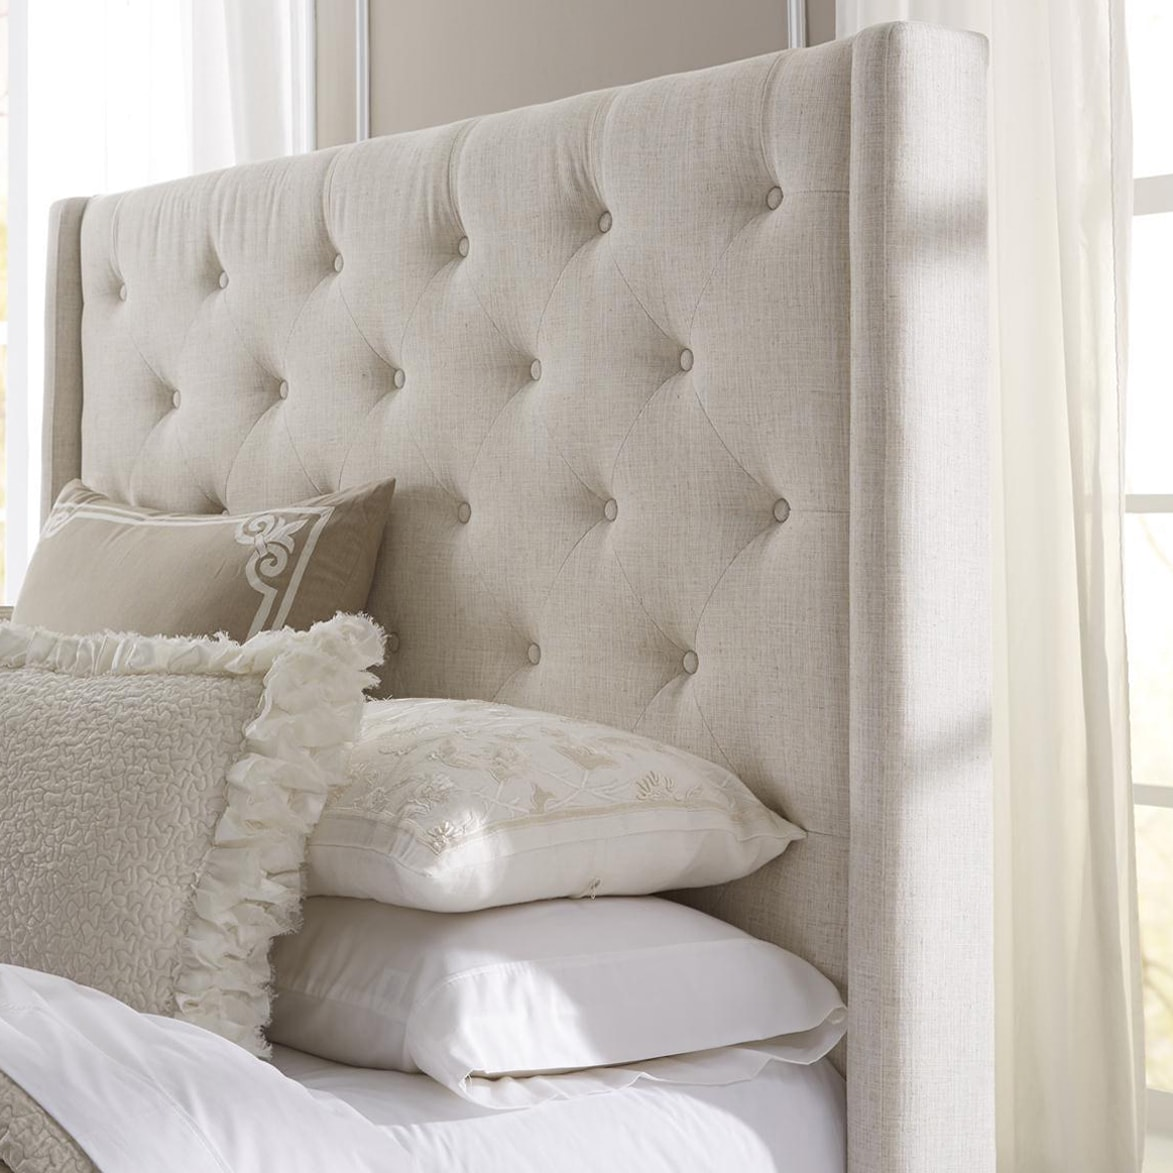 wid baxton product op cora button studio upholstered tufted hei jsp headboard sharpen gray beige prd